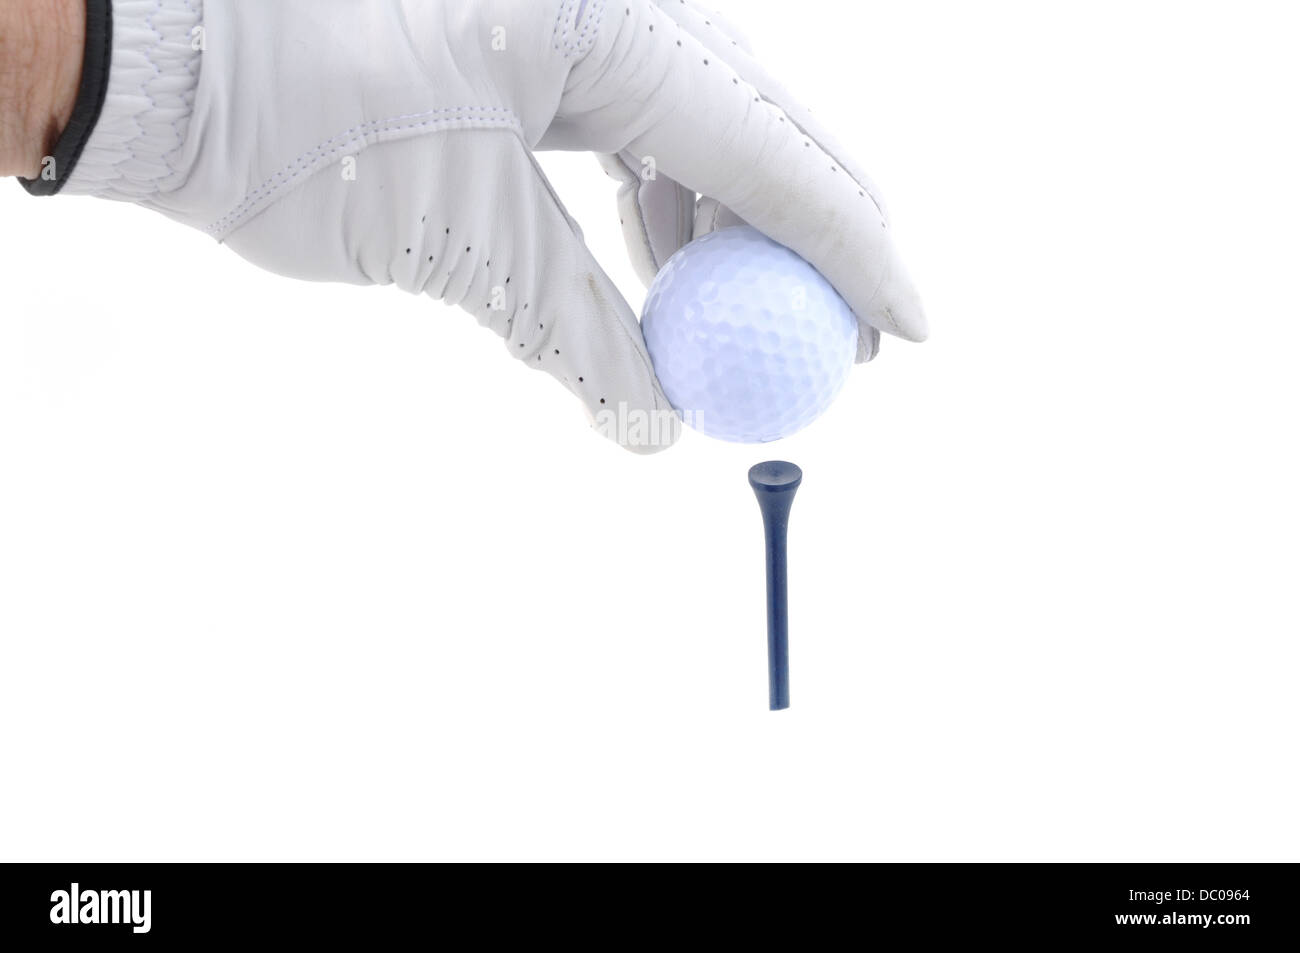 Golfer placing a golf ball on a tee - Stock Image